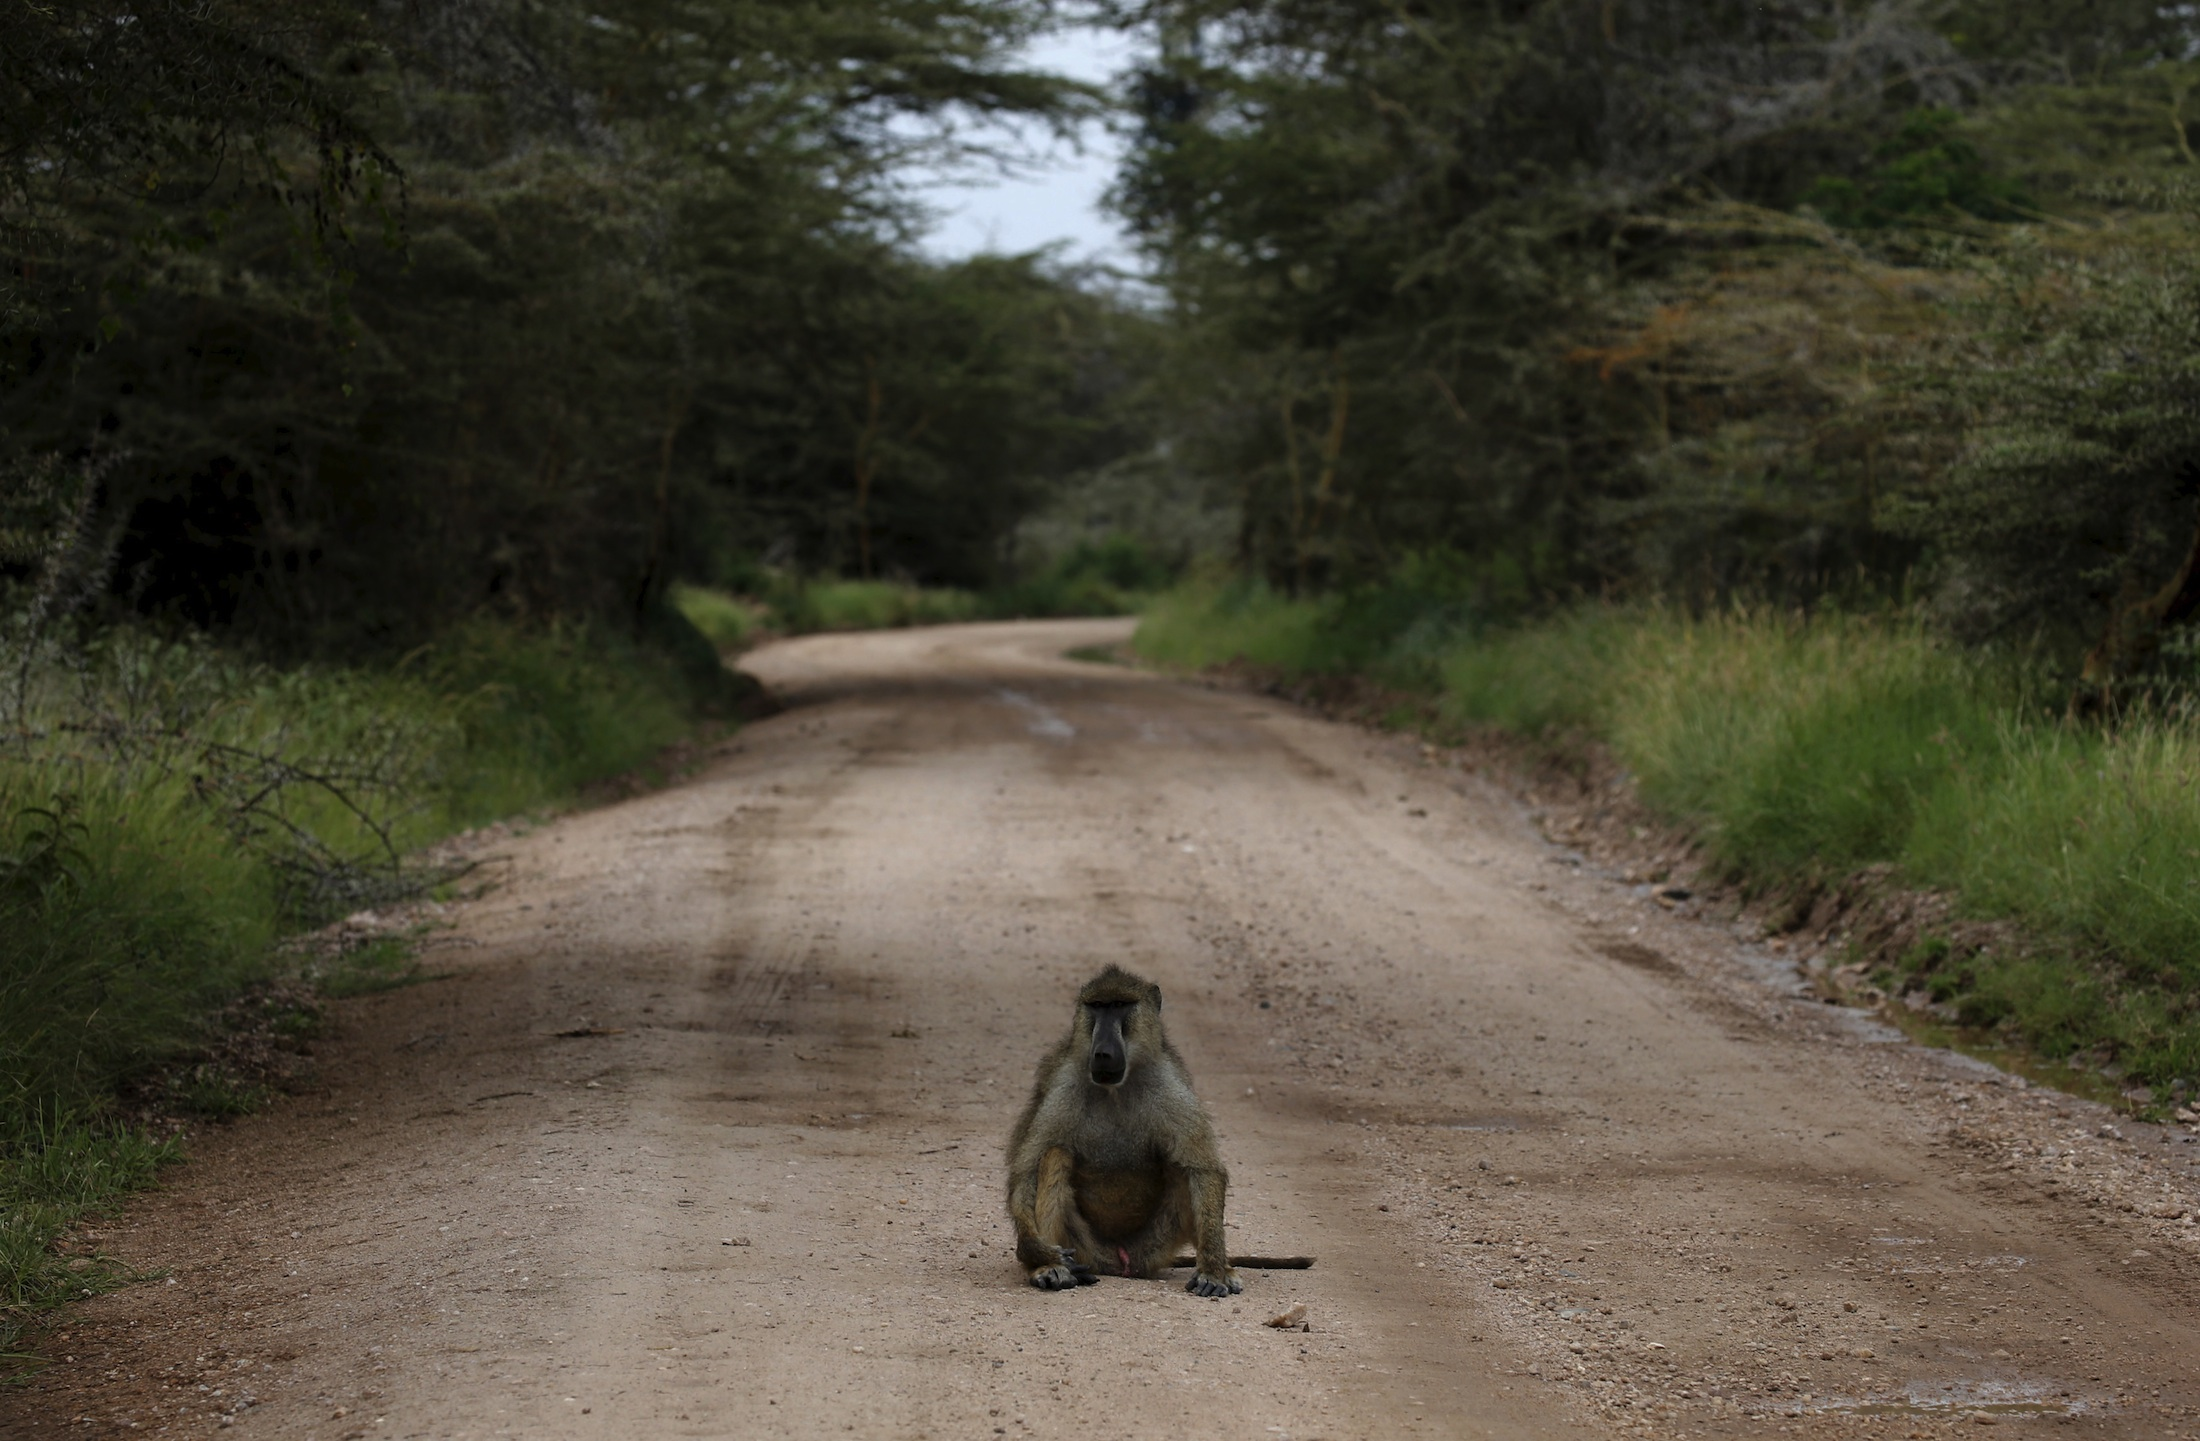 An Olive baboon sits on a road in Amboseli National park, Kenya, February 11,2016. REUTERS/Goran Tomasevic - RTX26UM1